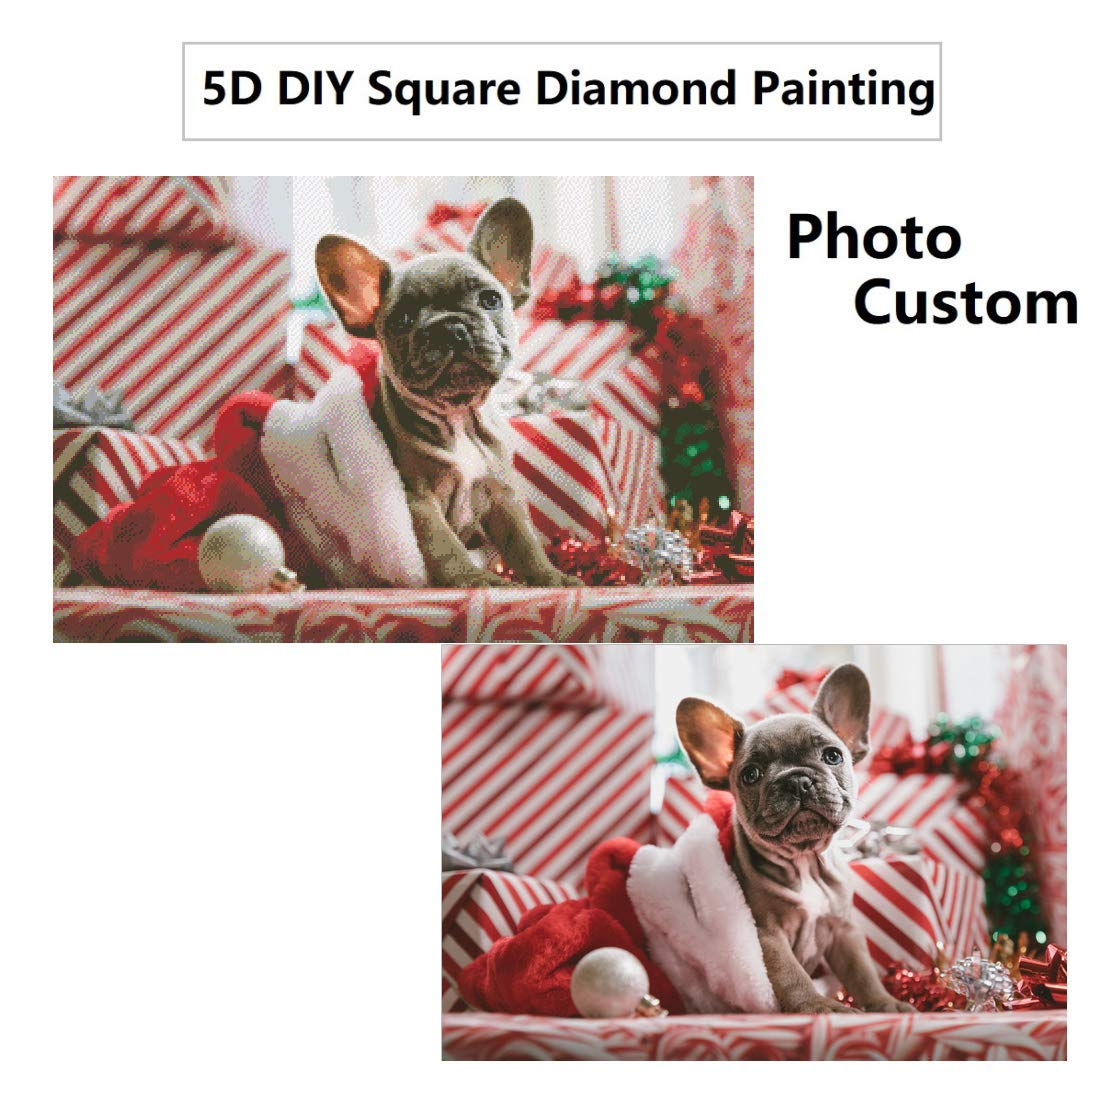 Personalized Photo Custom Diamond Painting Kits, DIY Square Full Drill 5D Crystal Rhinestone by Number Kits Embroidery Pictures Arts Craft for Home Wall Decor